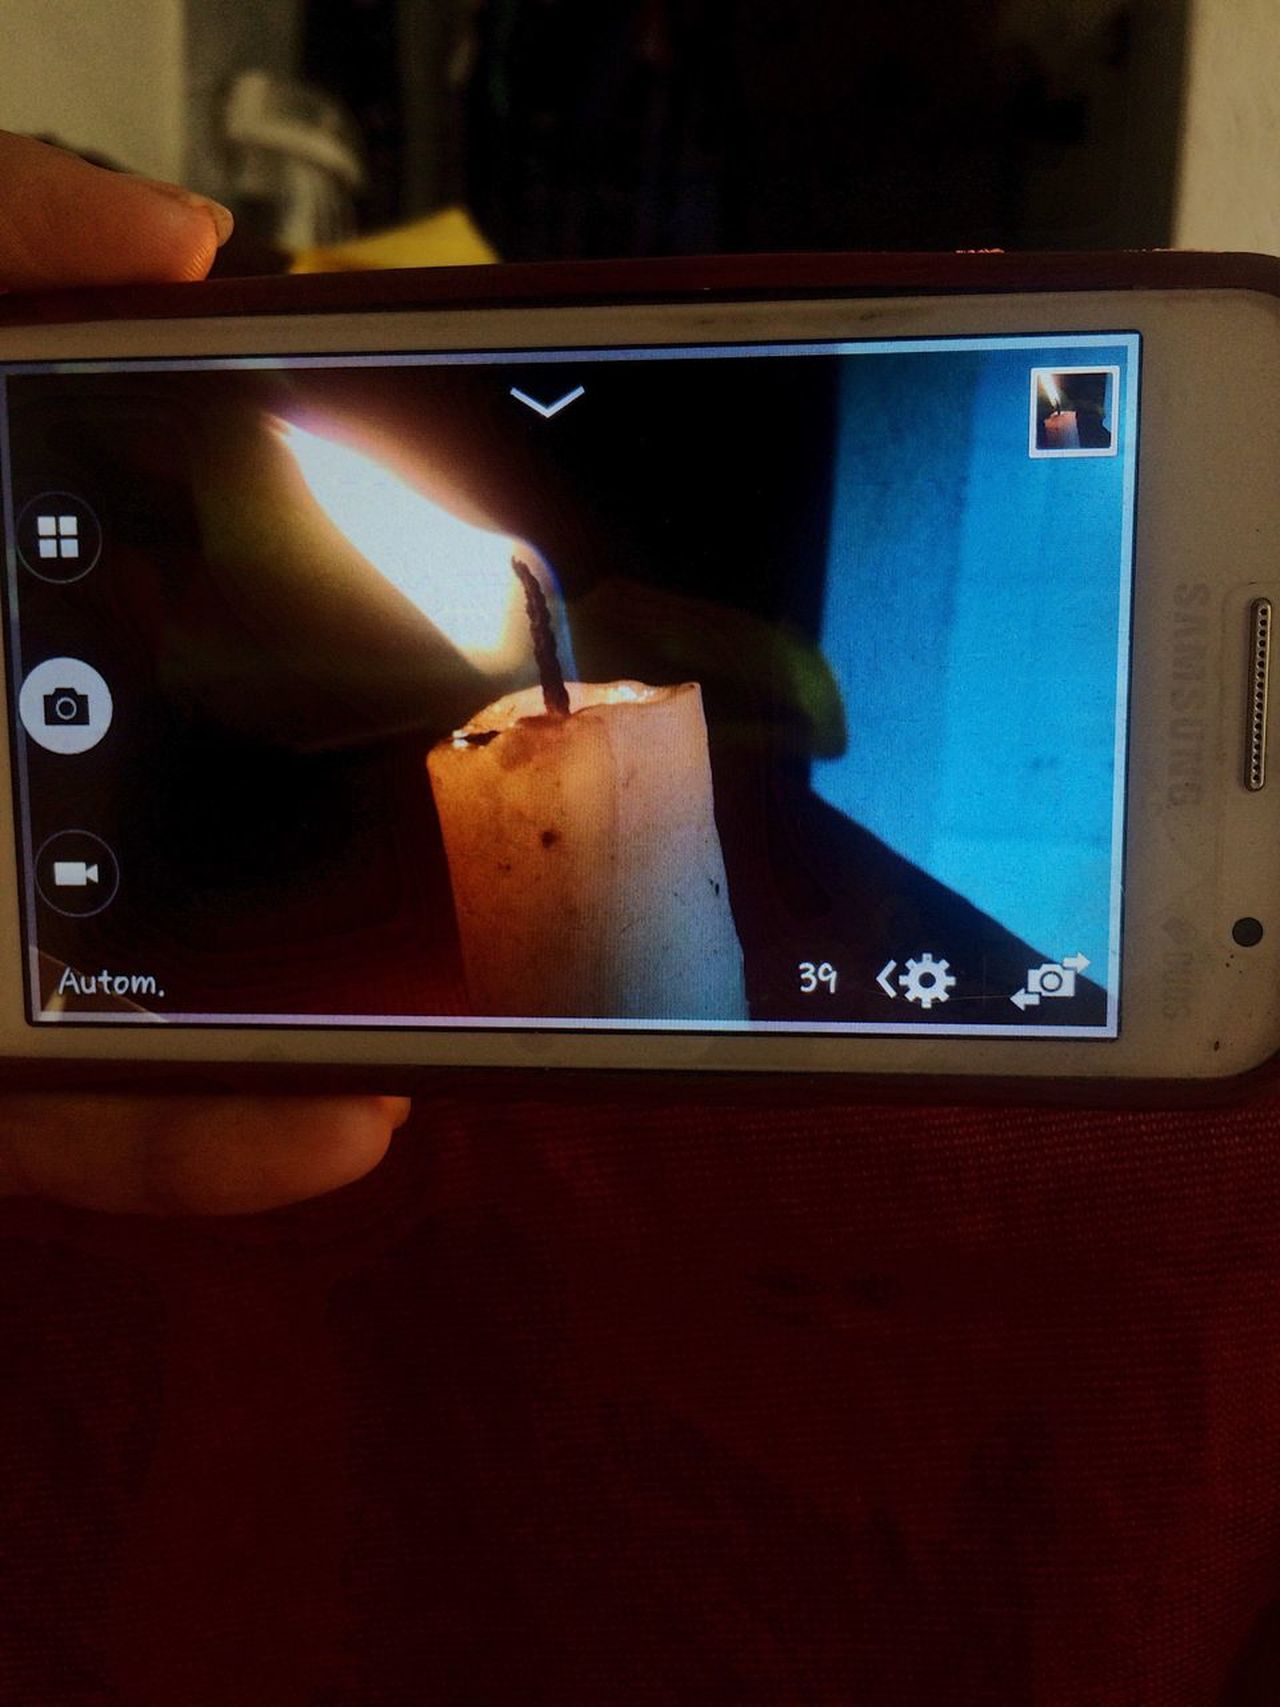 Diya - Oil Lamp Real People Candle Candles Candle Night Human Hand Illuminated Candles.❤ Candlephotography